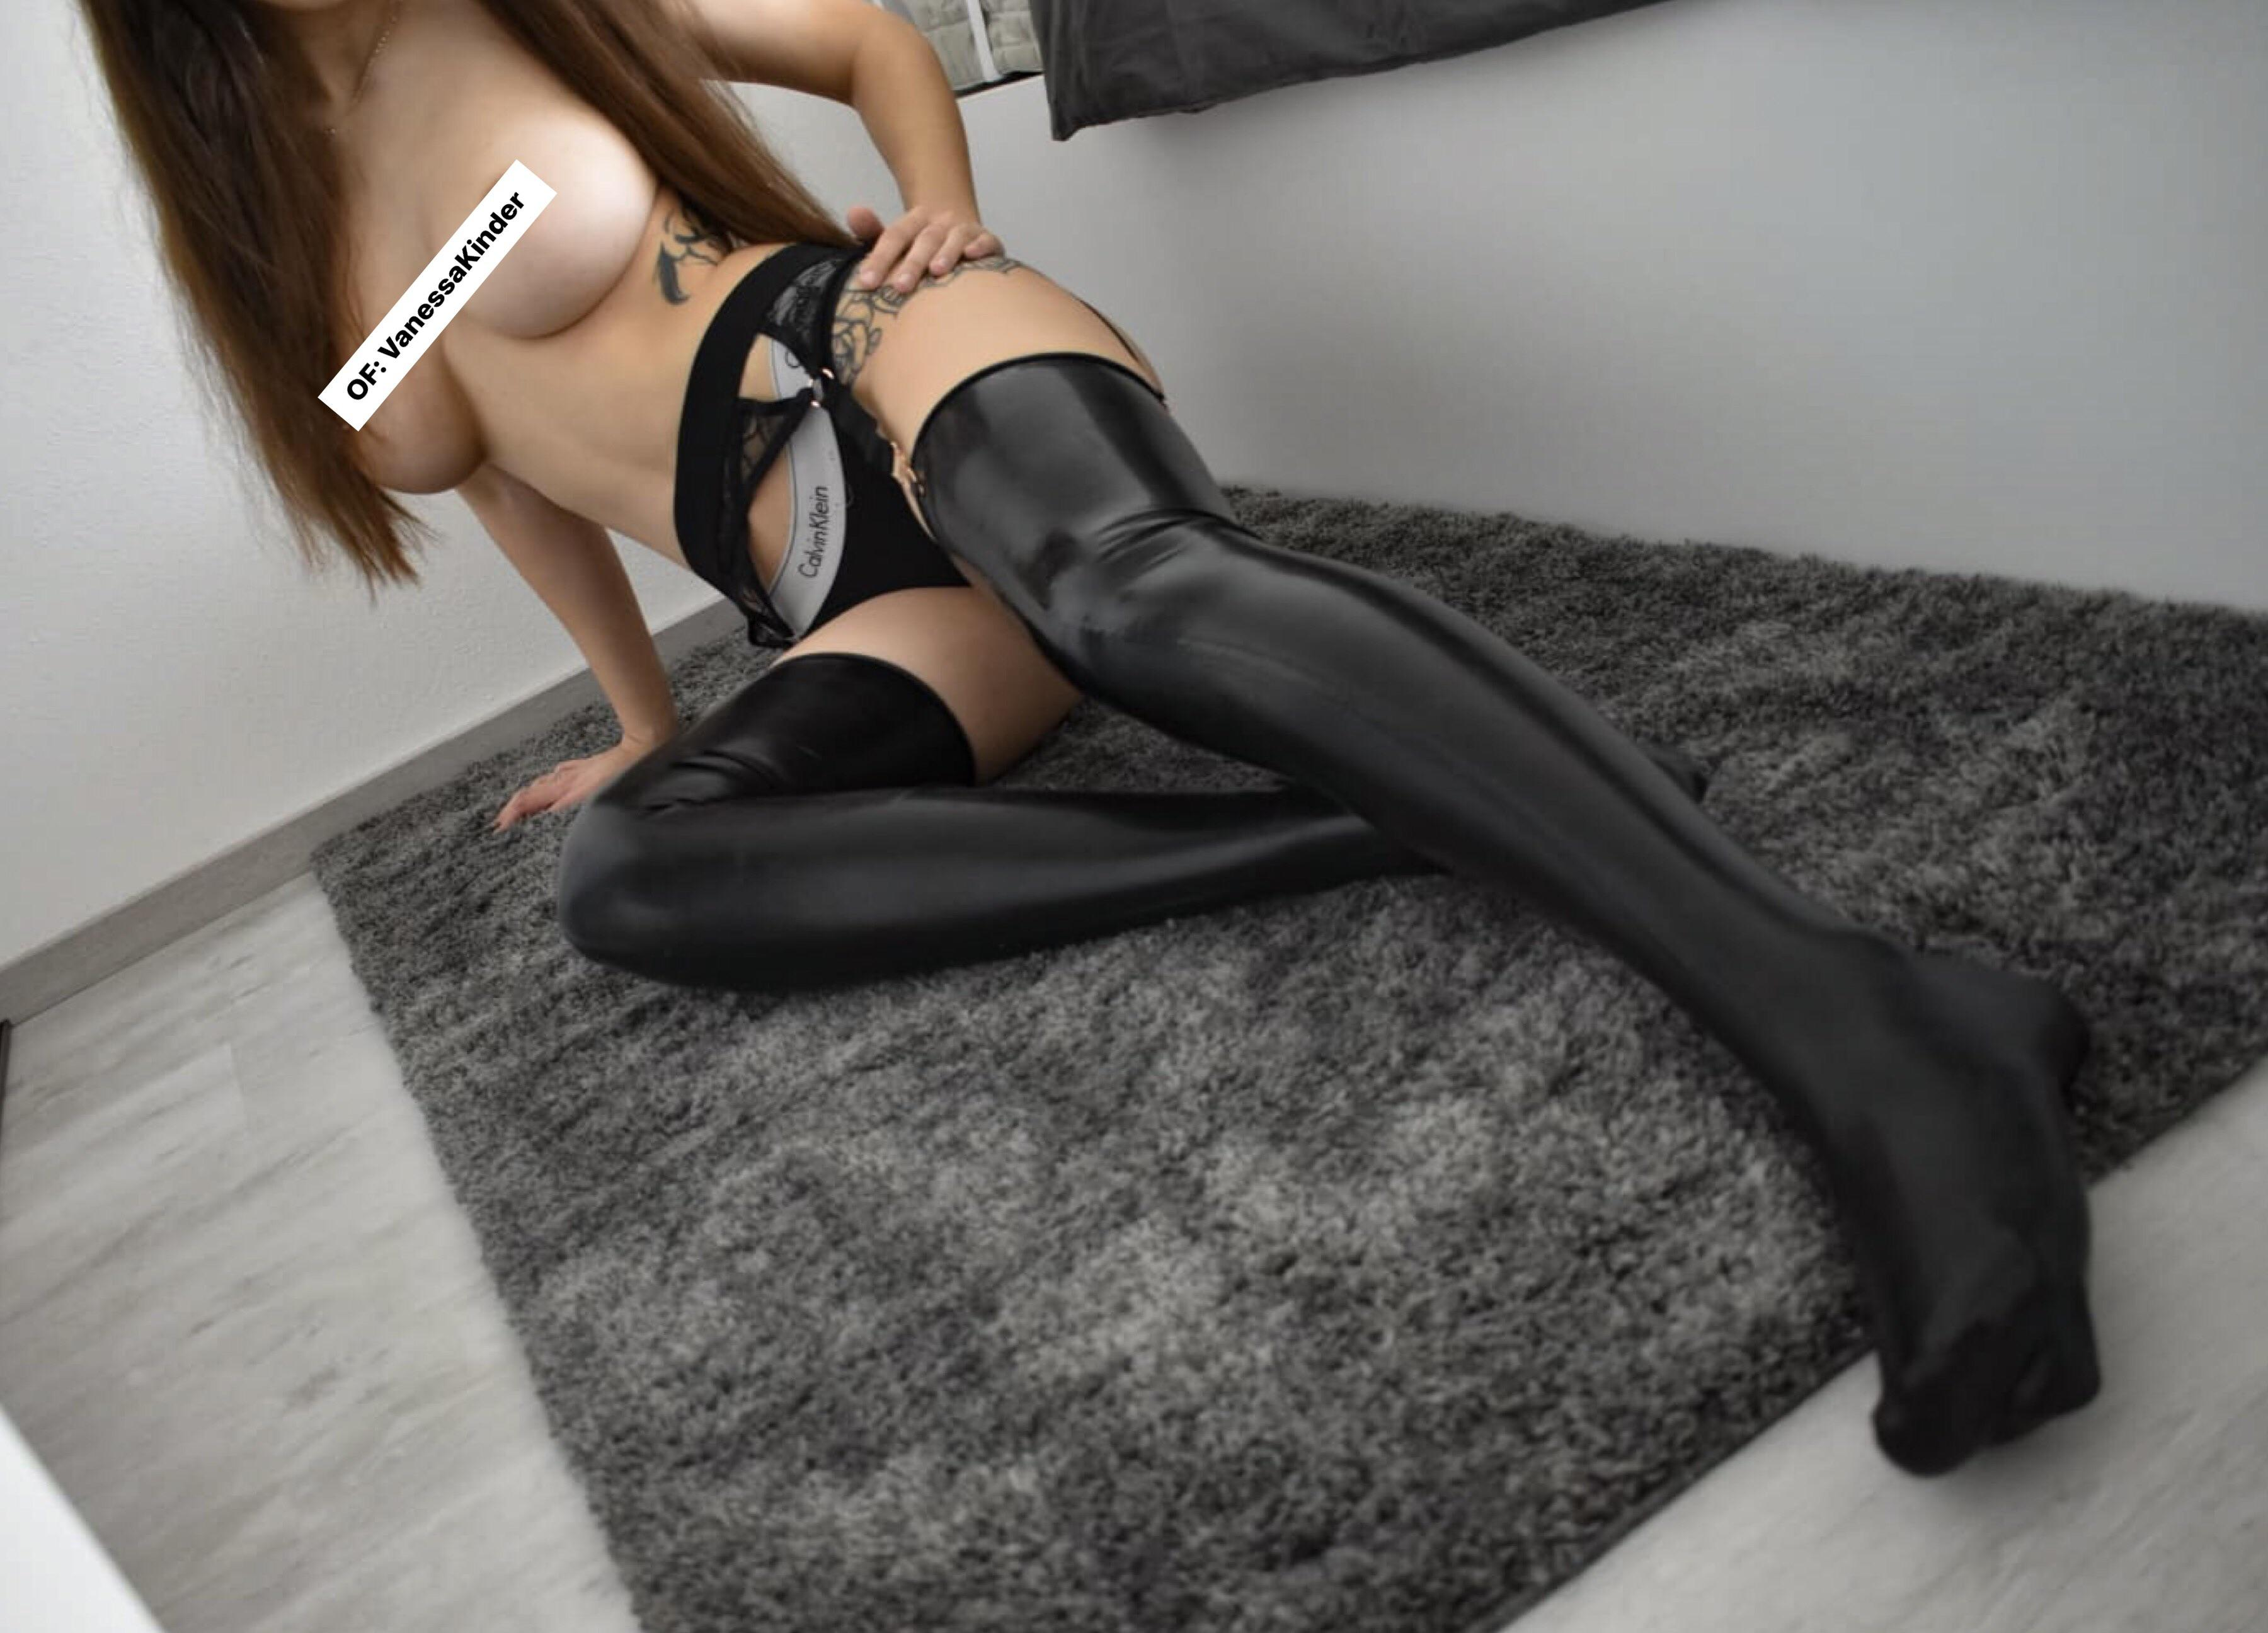 My Latex Legs Are Meant To Be Worshipped